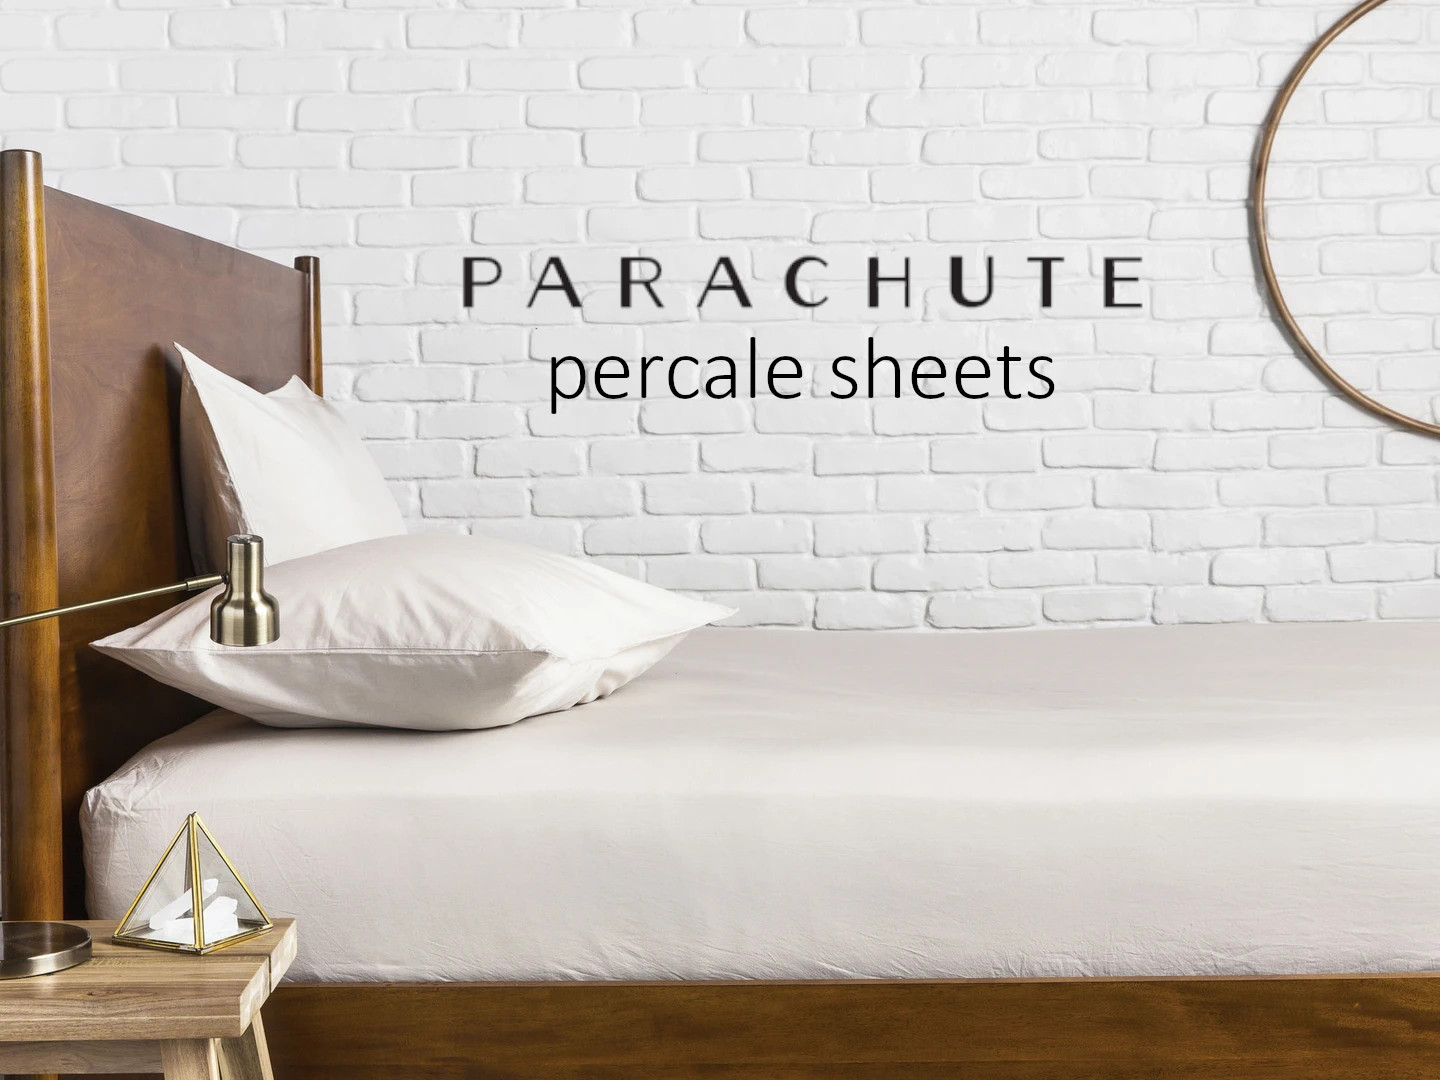 parachute percale cotton sheets review